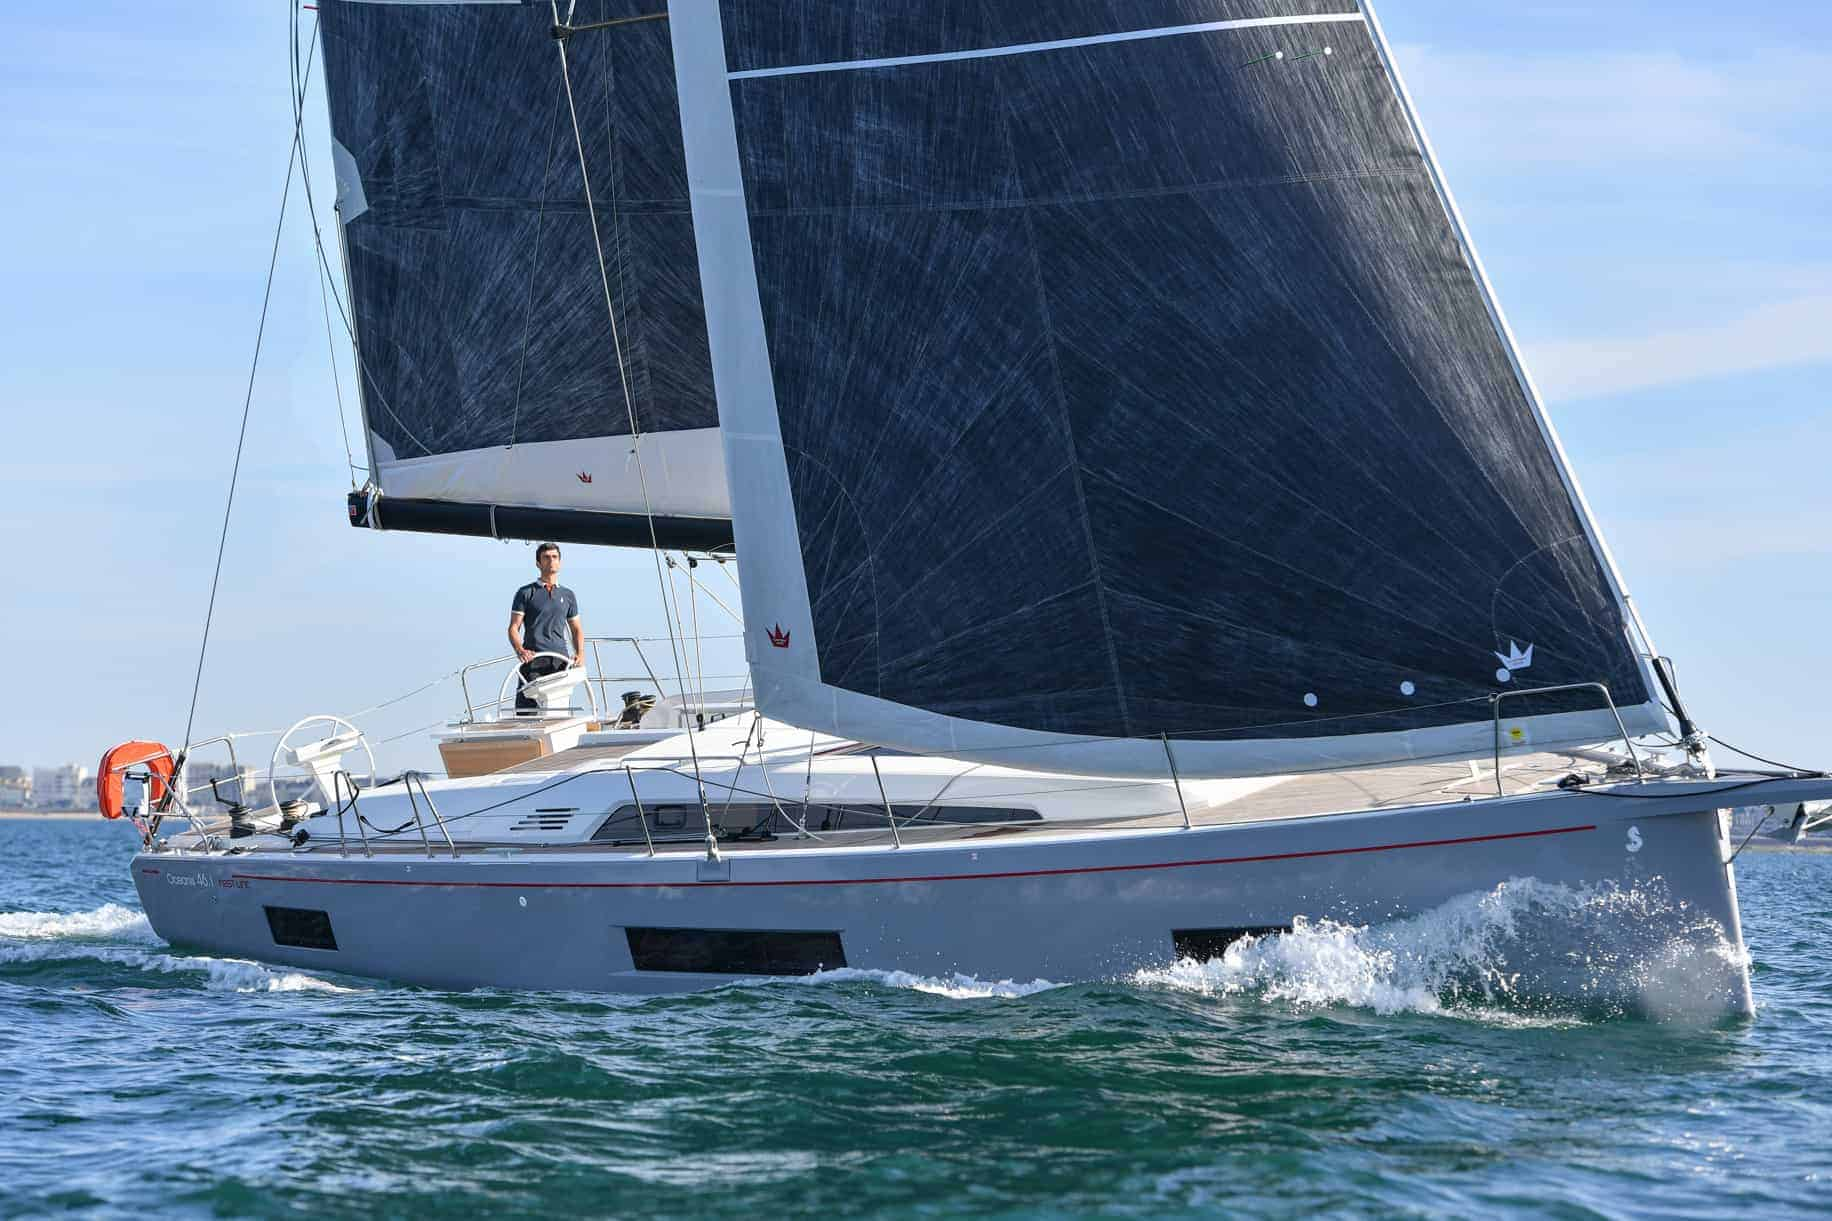 The majestic Beneteau Oceanis 46.1 in action with wind in its sail and a man at the cockpit